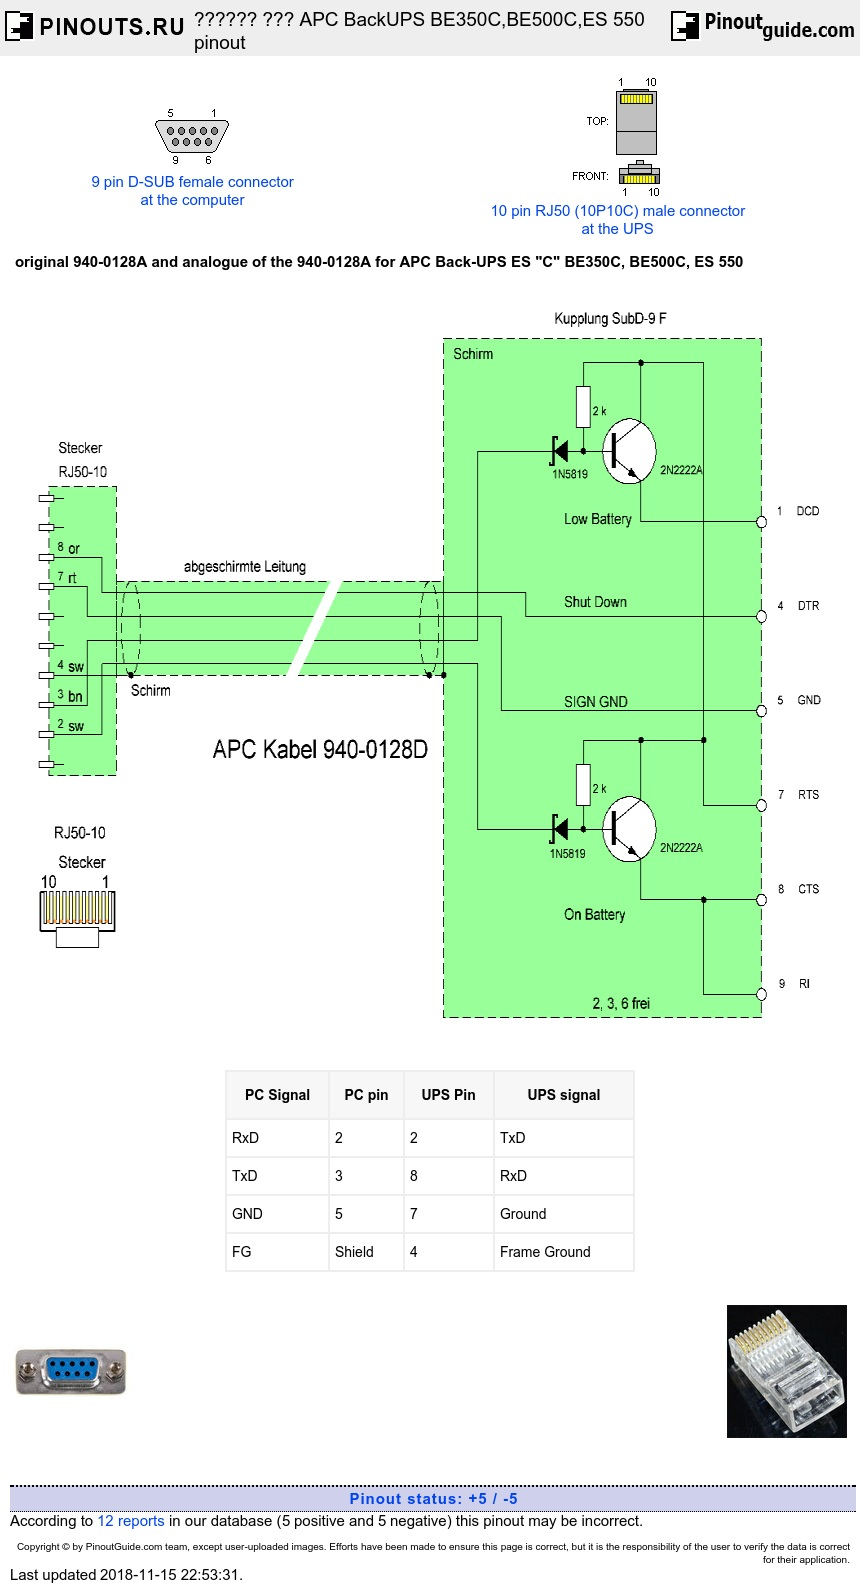 wiring diagram for apc 1500 usb to rj45 wiring diagram for apc apc backups be350c be500c es 550 smart signalling cable pinout